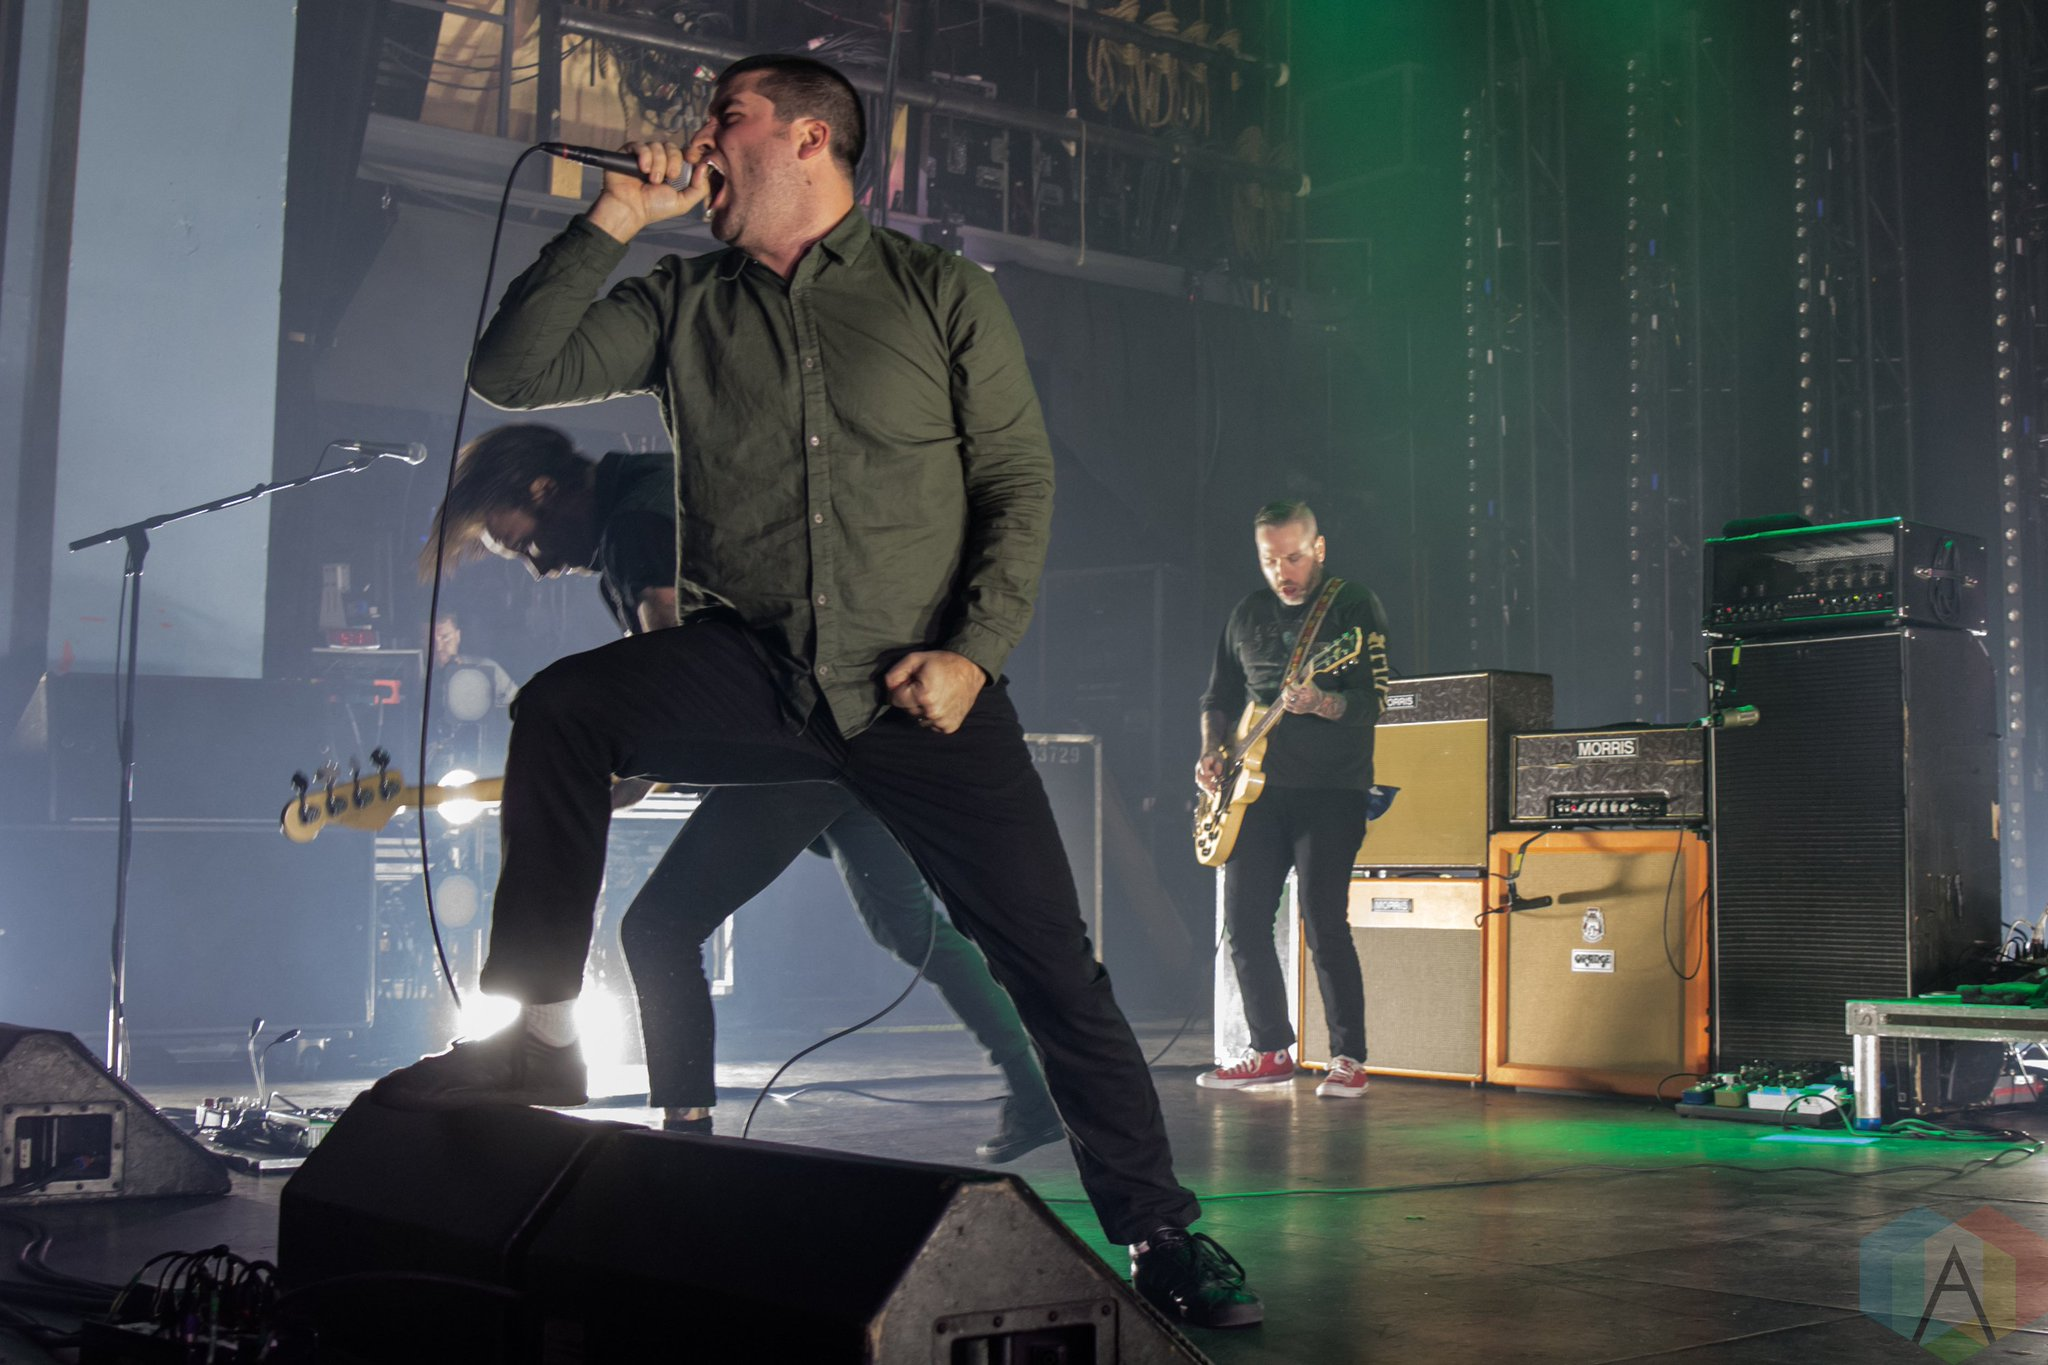 RT @Aesthetic_Mag: Photos: Alexisonfire, Single Mothers at Danforth Music Hall. #Toronto https://t.co/556rwBgh9f https://t.co/zcQXDSnI0B